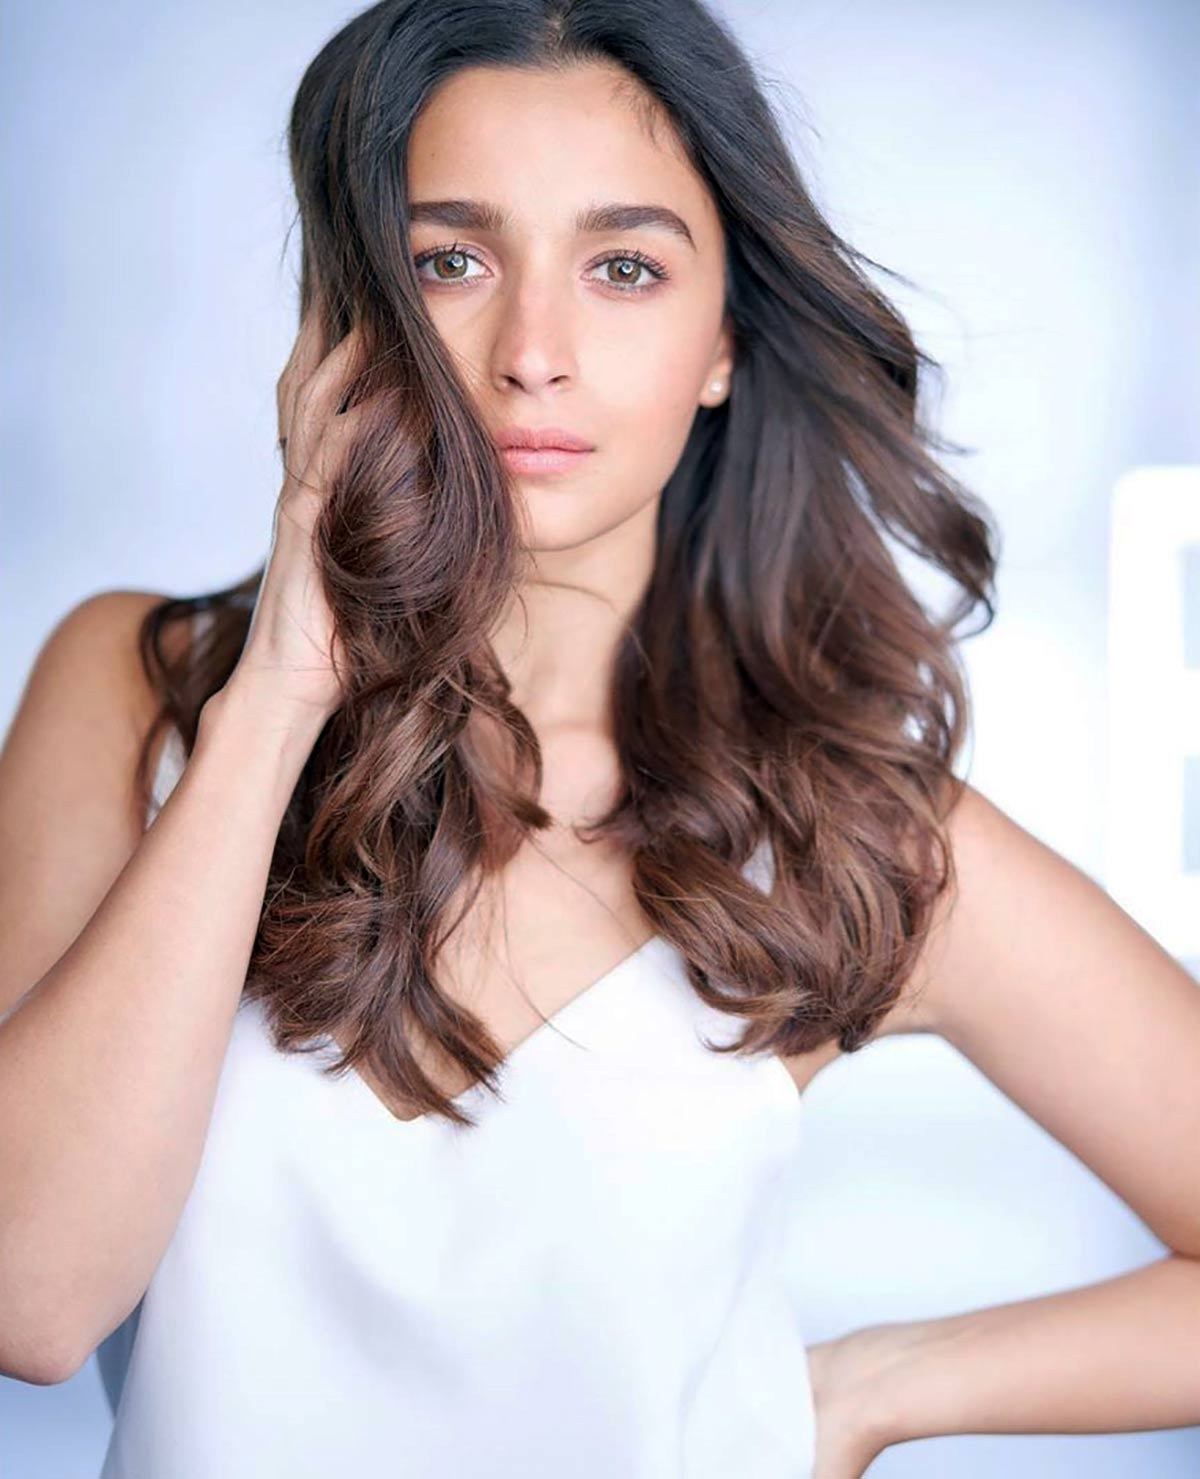 Hottest HD Pictures Of Alia Bhatt Sexy Look - Fap Tributes